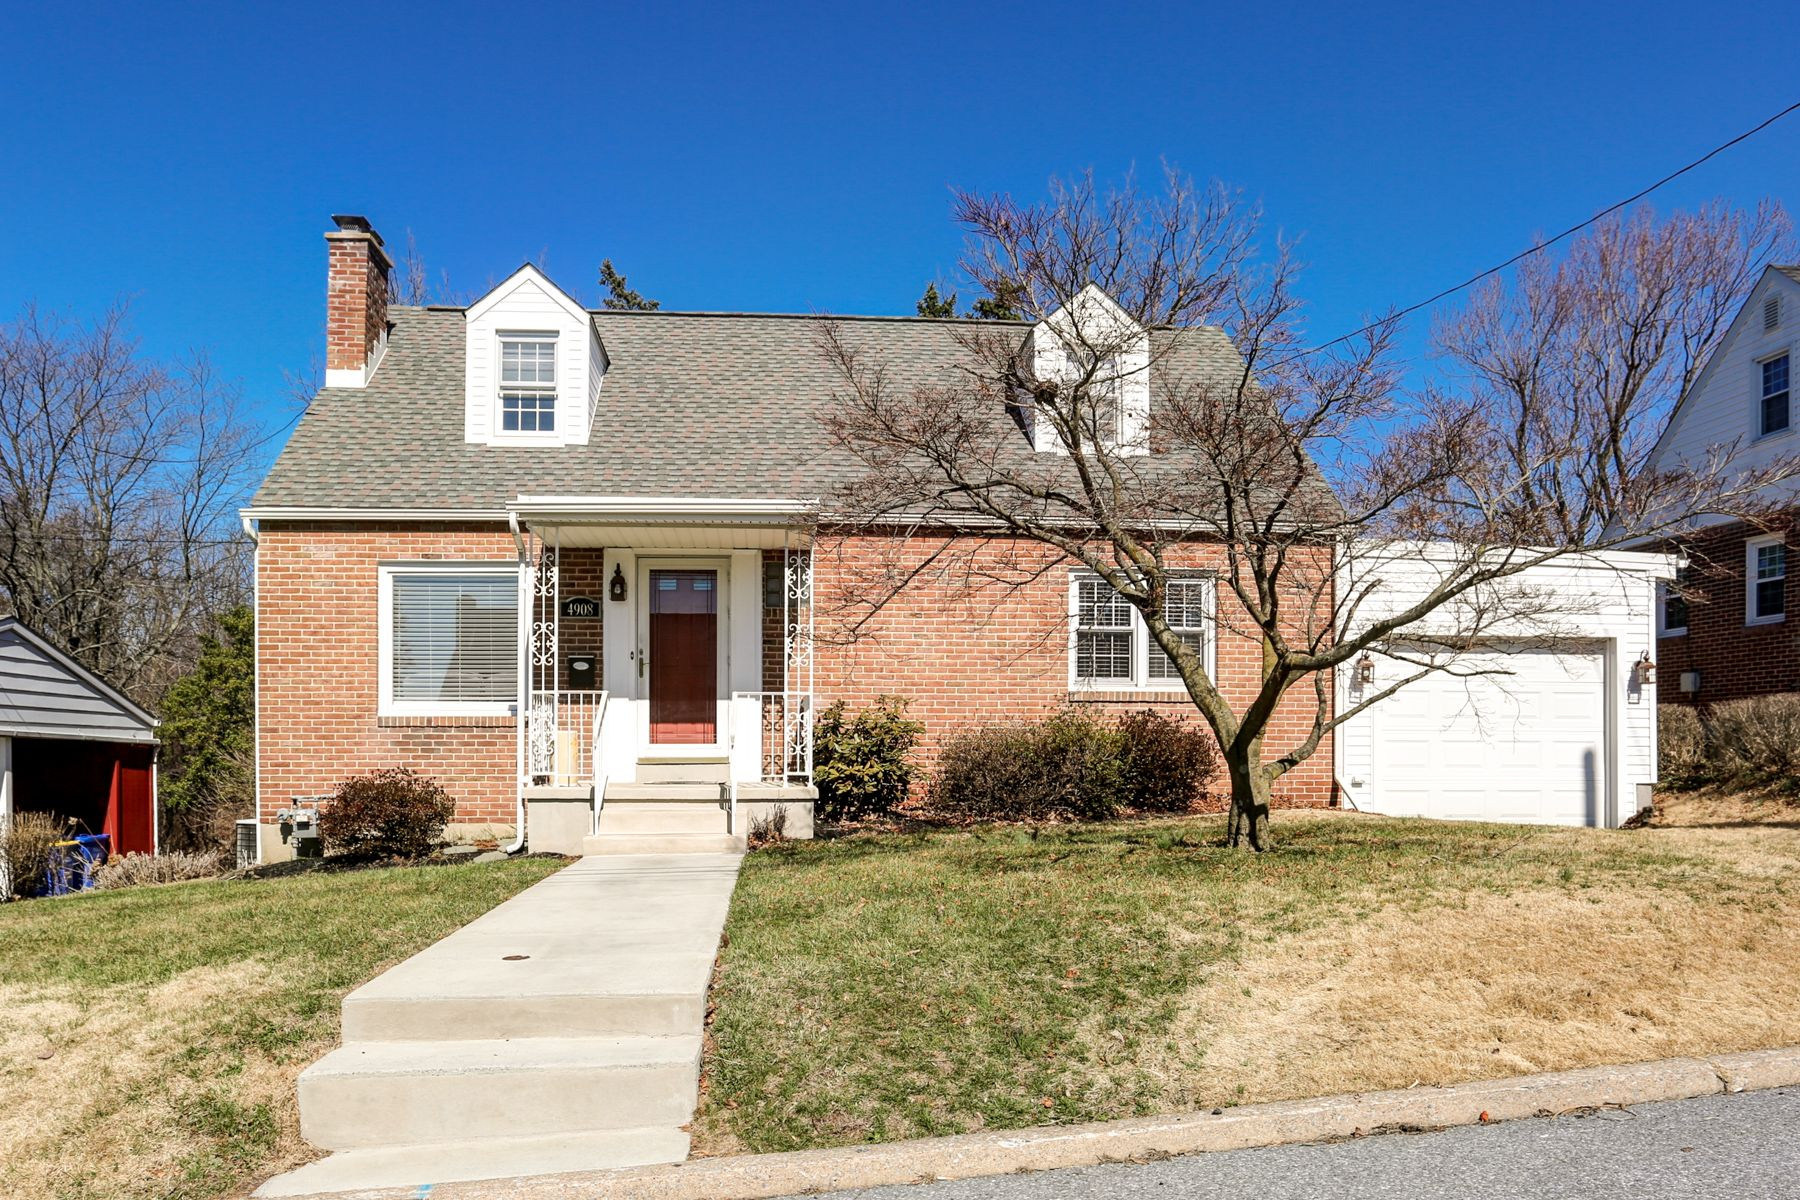 Swatara Twp 4908 Hilltop Rd Harrisburg Well Maintained 4 Bdrm Brick Cape Cod W Attached 1 Car Garage Living Rm W Brick Real Estate Gas Fireplace My Home